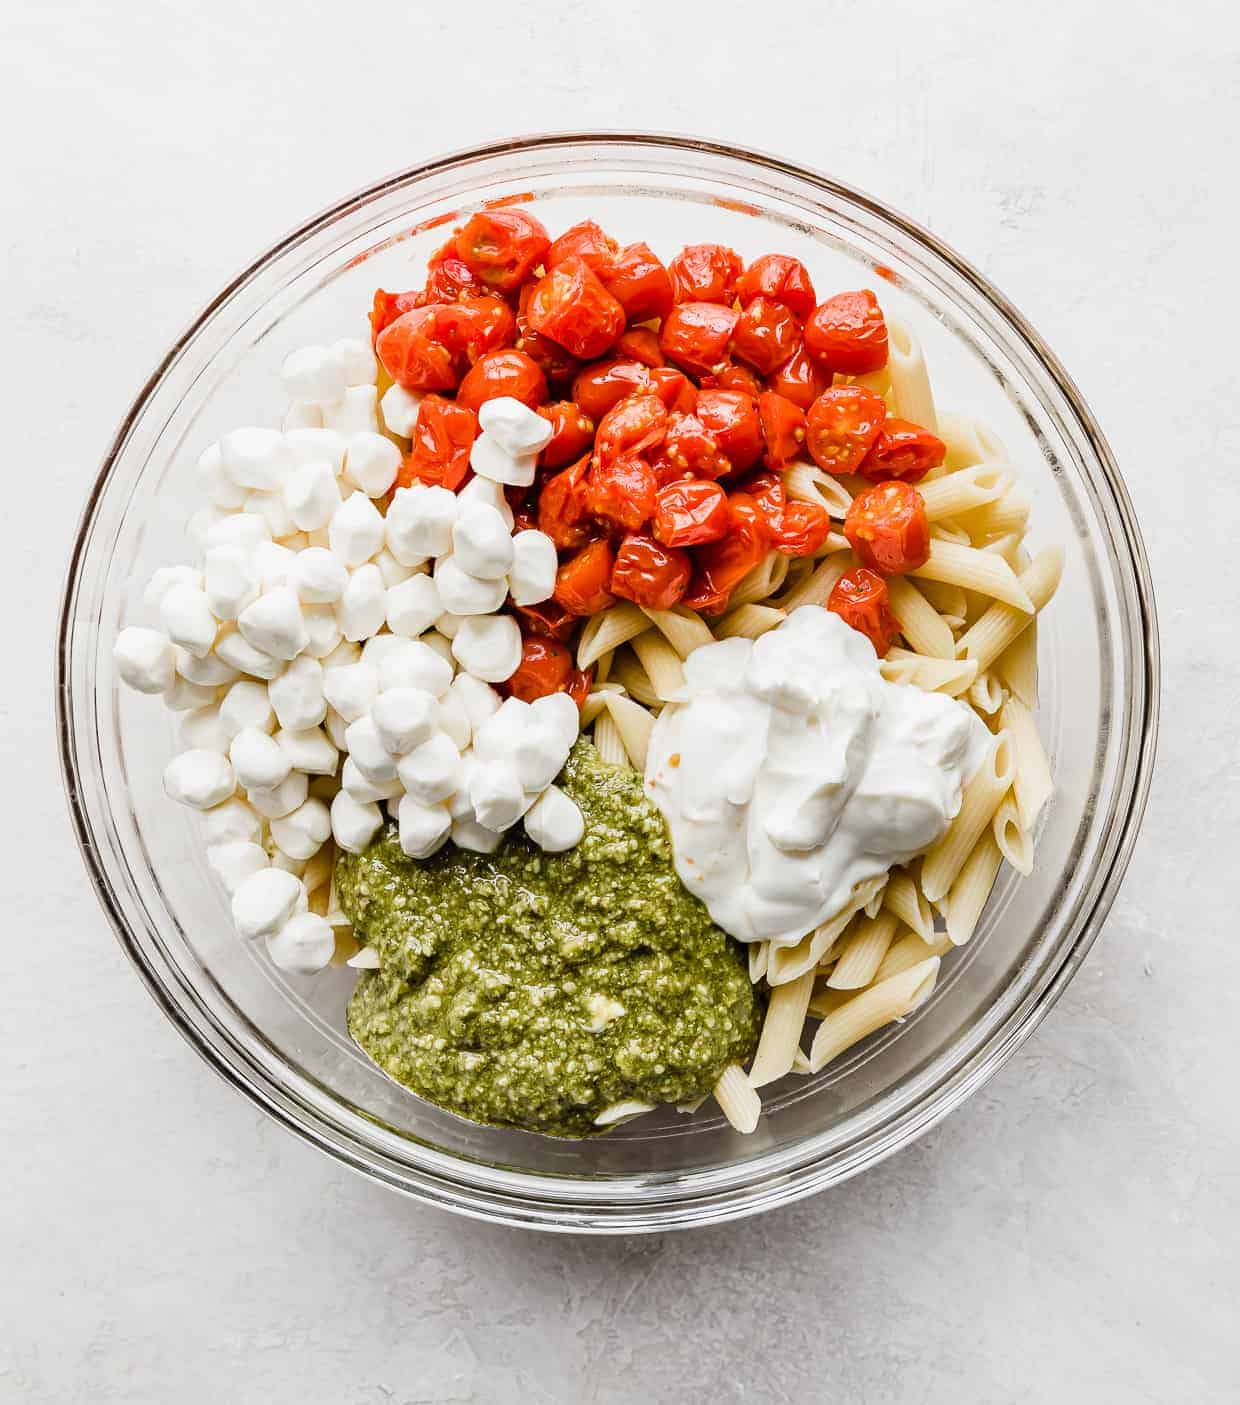 A glass bowl with grape tomatoes, mozzarella balls, sour cream, pesto, a top cooked penne noodles.